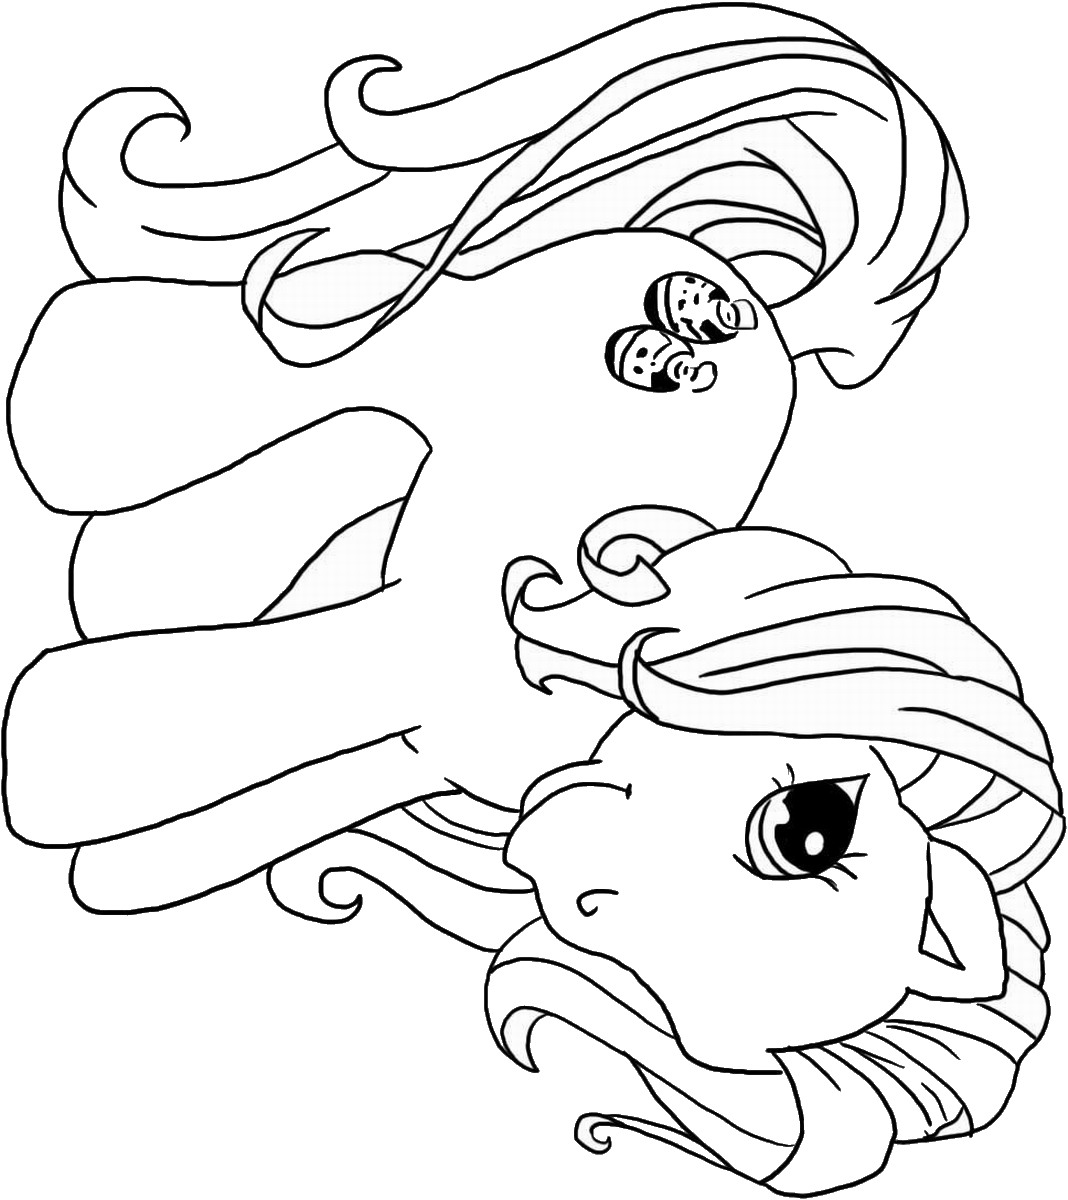 my little pony printing pages free printable my little pony coloring pages for kids my pony little pages printing